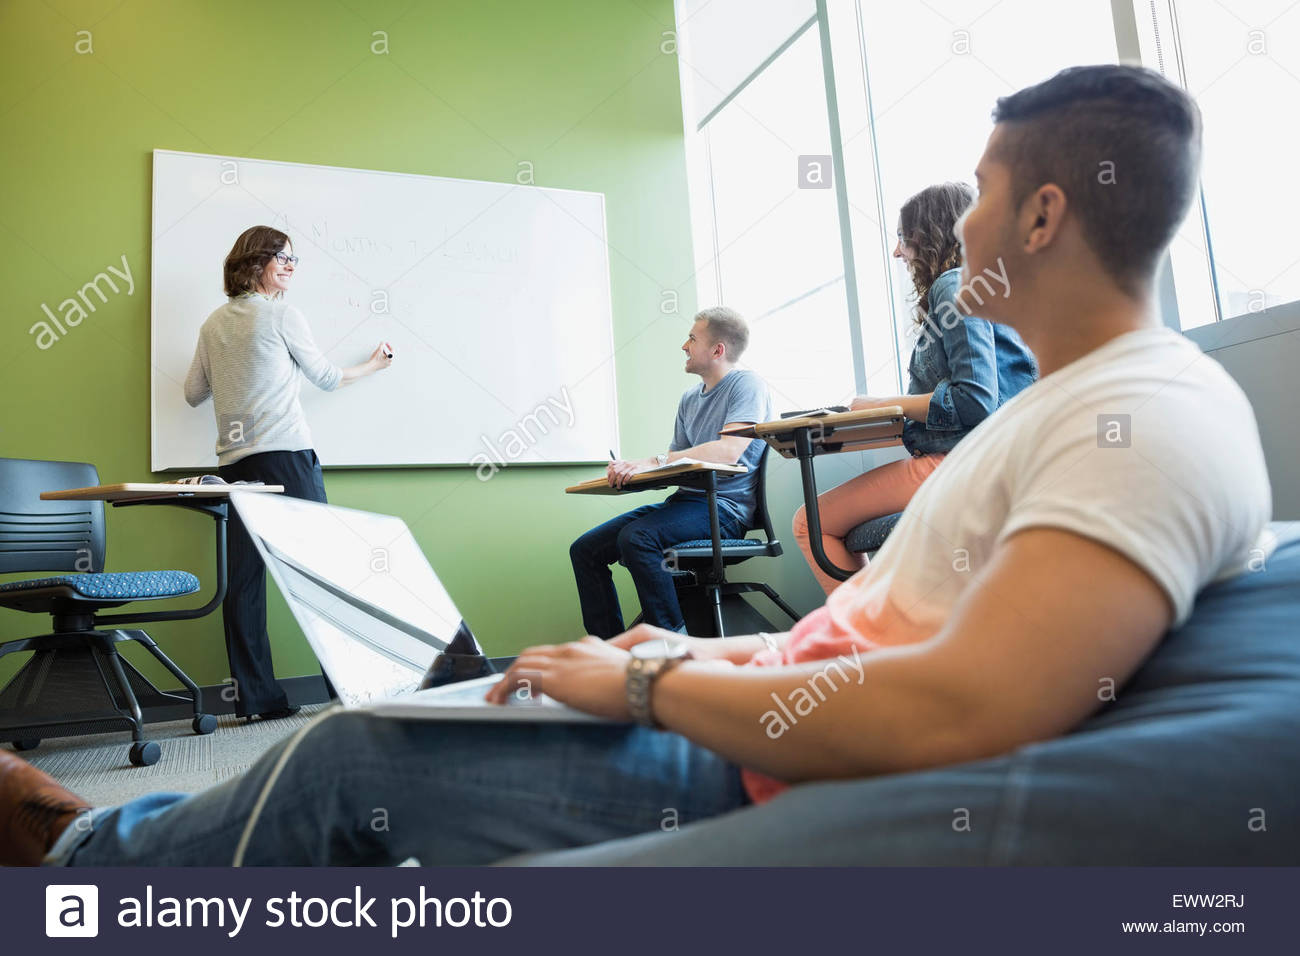 College students watching professor at whiteboard in classroom - Stock Image